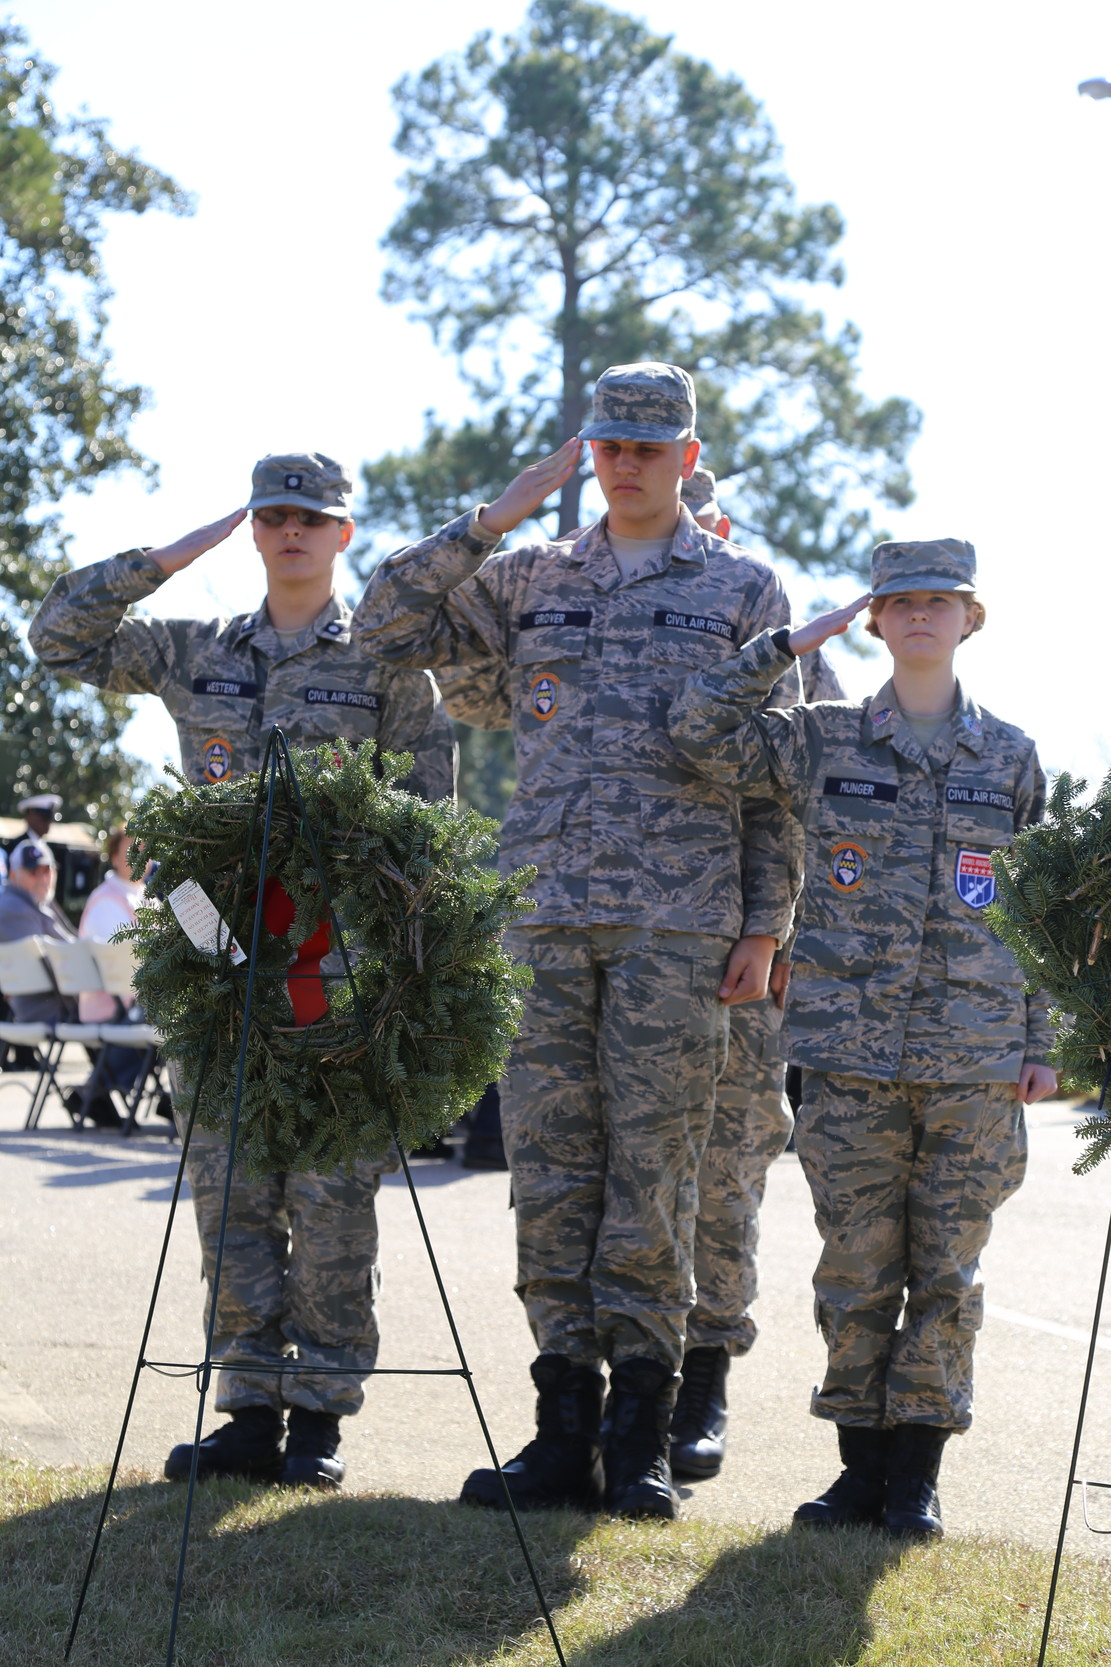 Members of Sumter Civil Air Patrol salute after placing a wreath on Saturday.